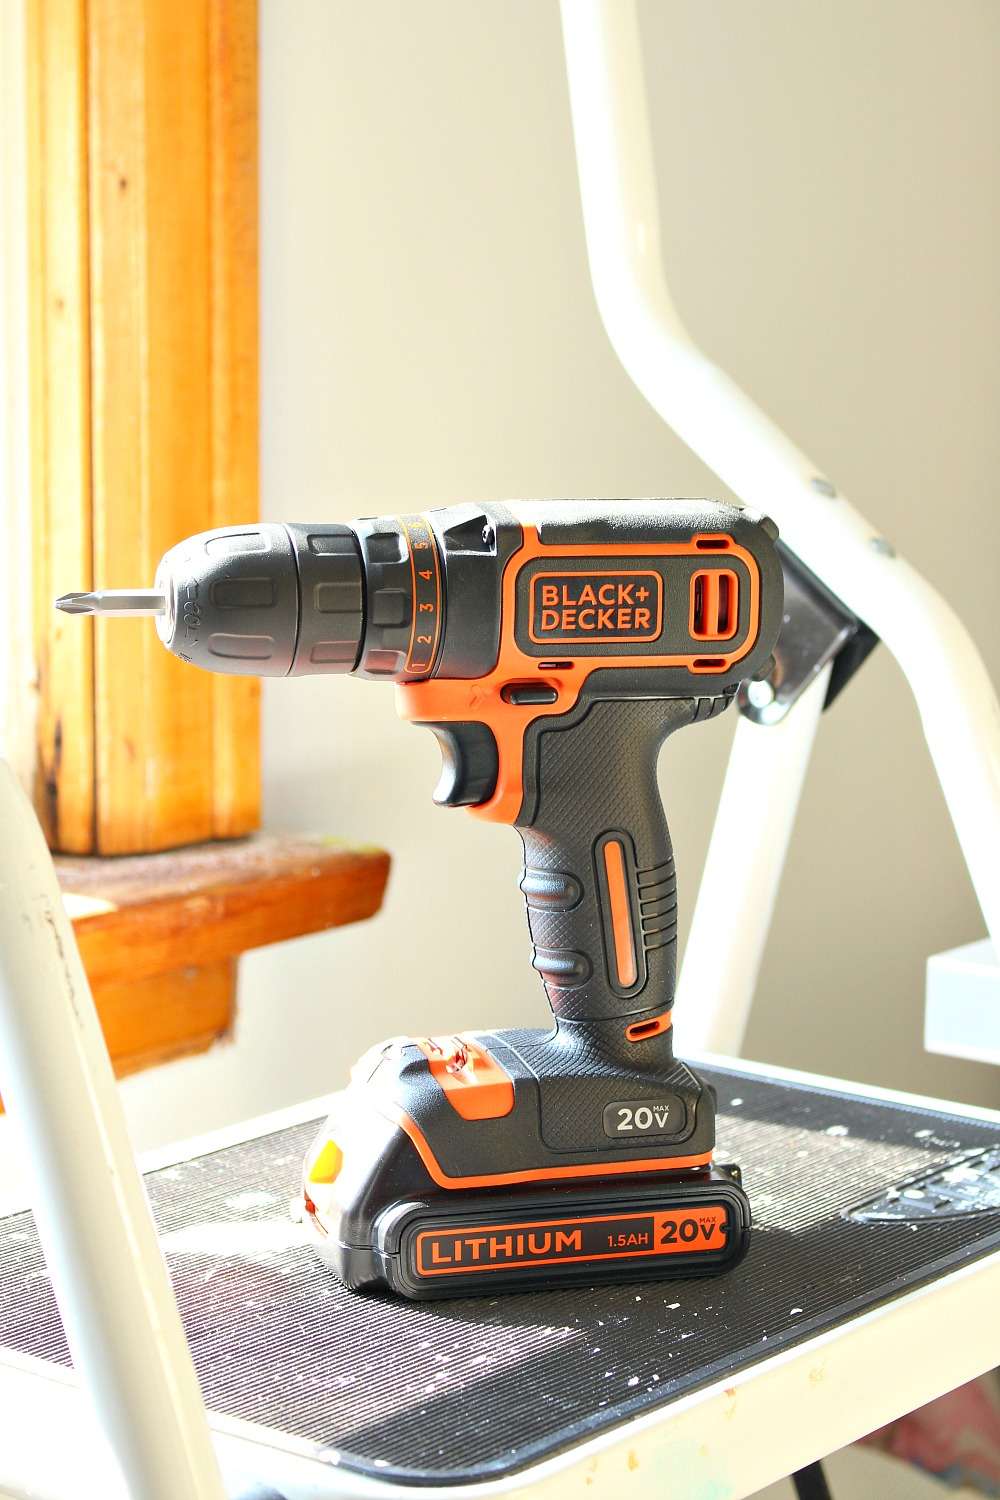 Black + Decker 20V Cordless Drill Review